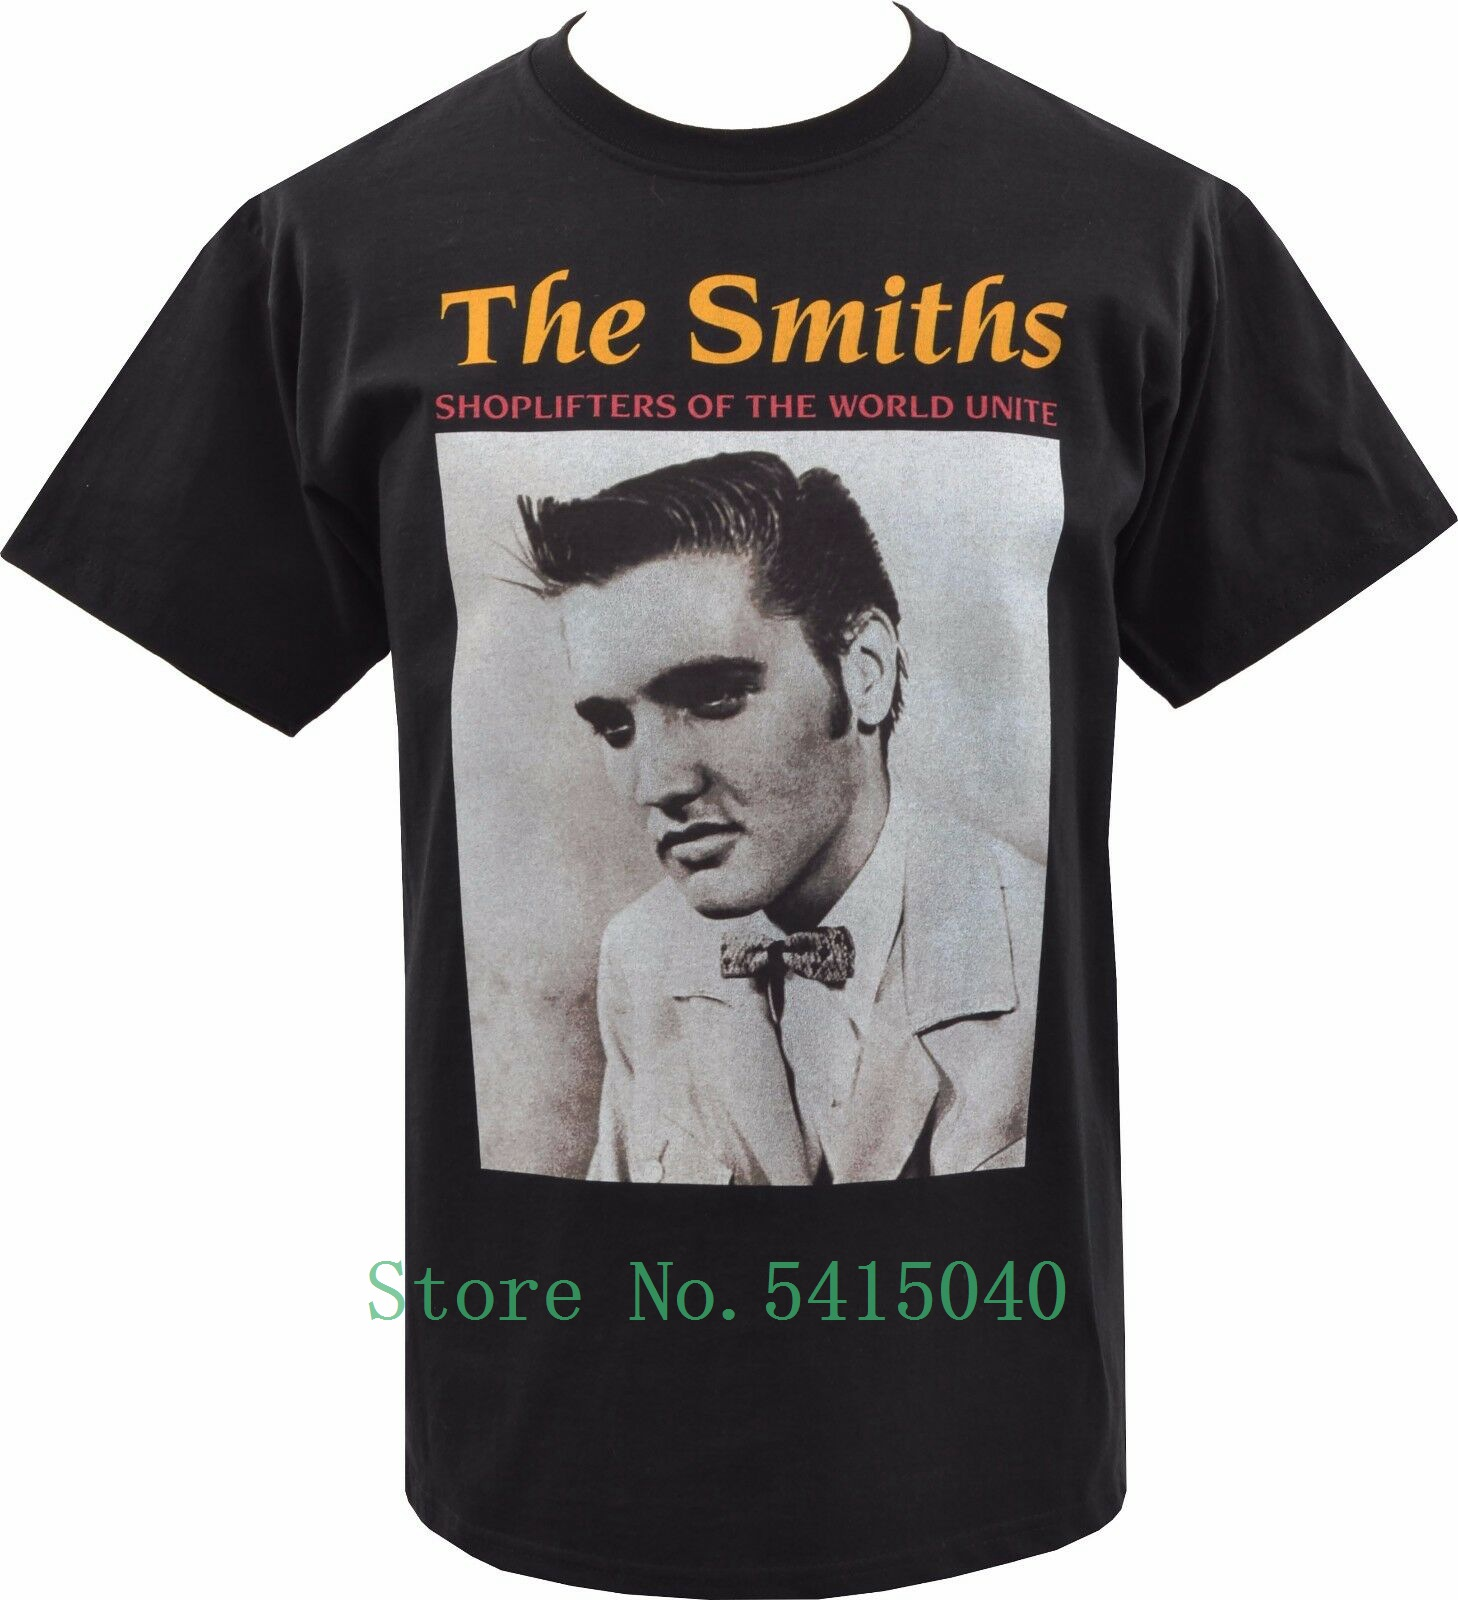 MENS WHITE T-SHIRT THE SMITHS QUEEN IS DEAD BRITISH MORRISSEY NORTHERN S-5XL